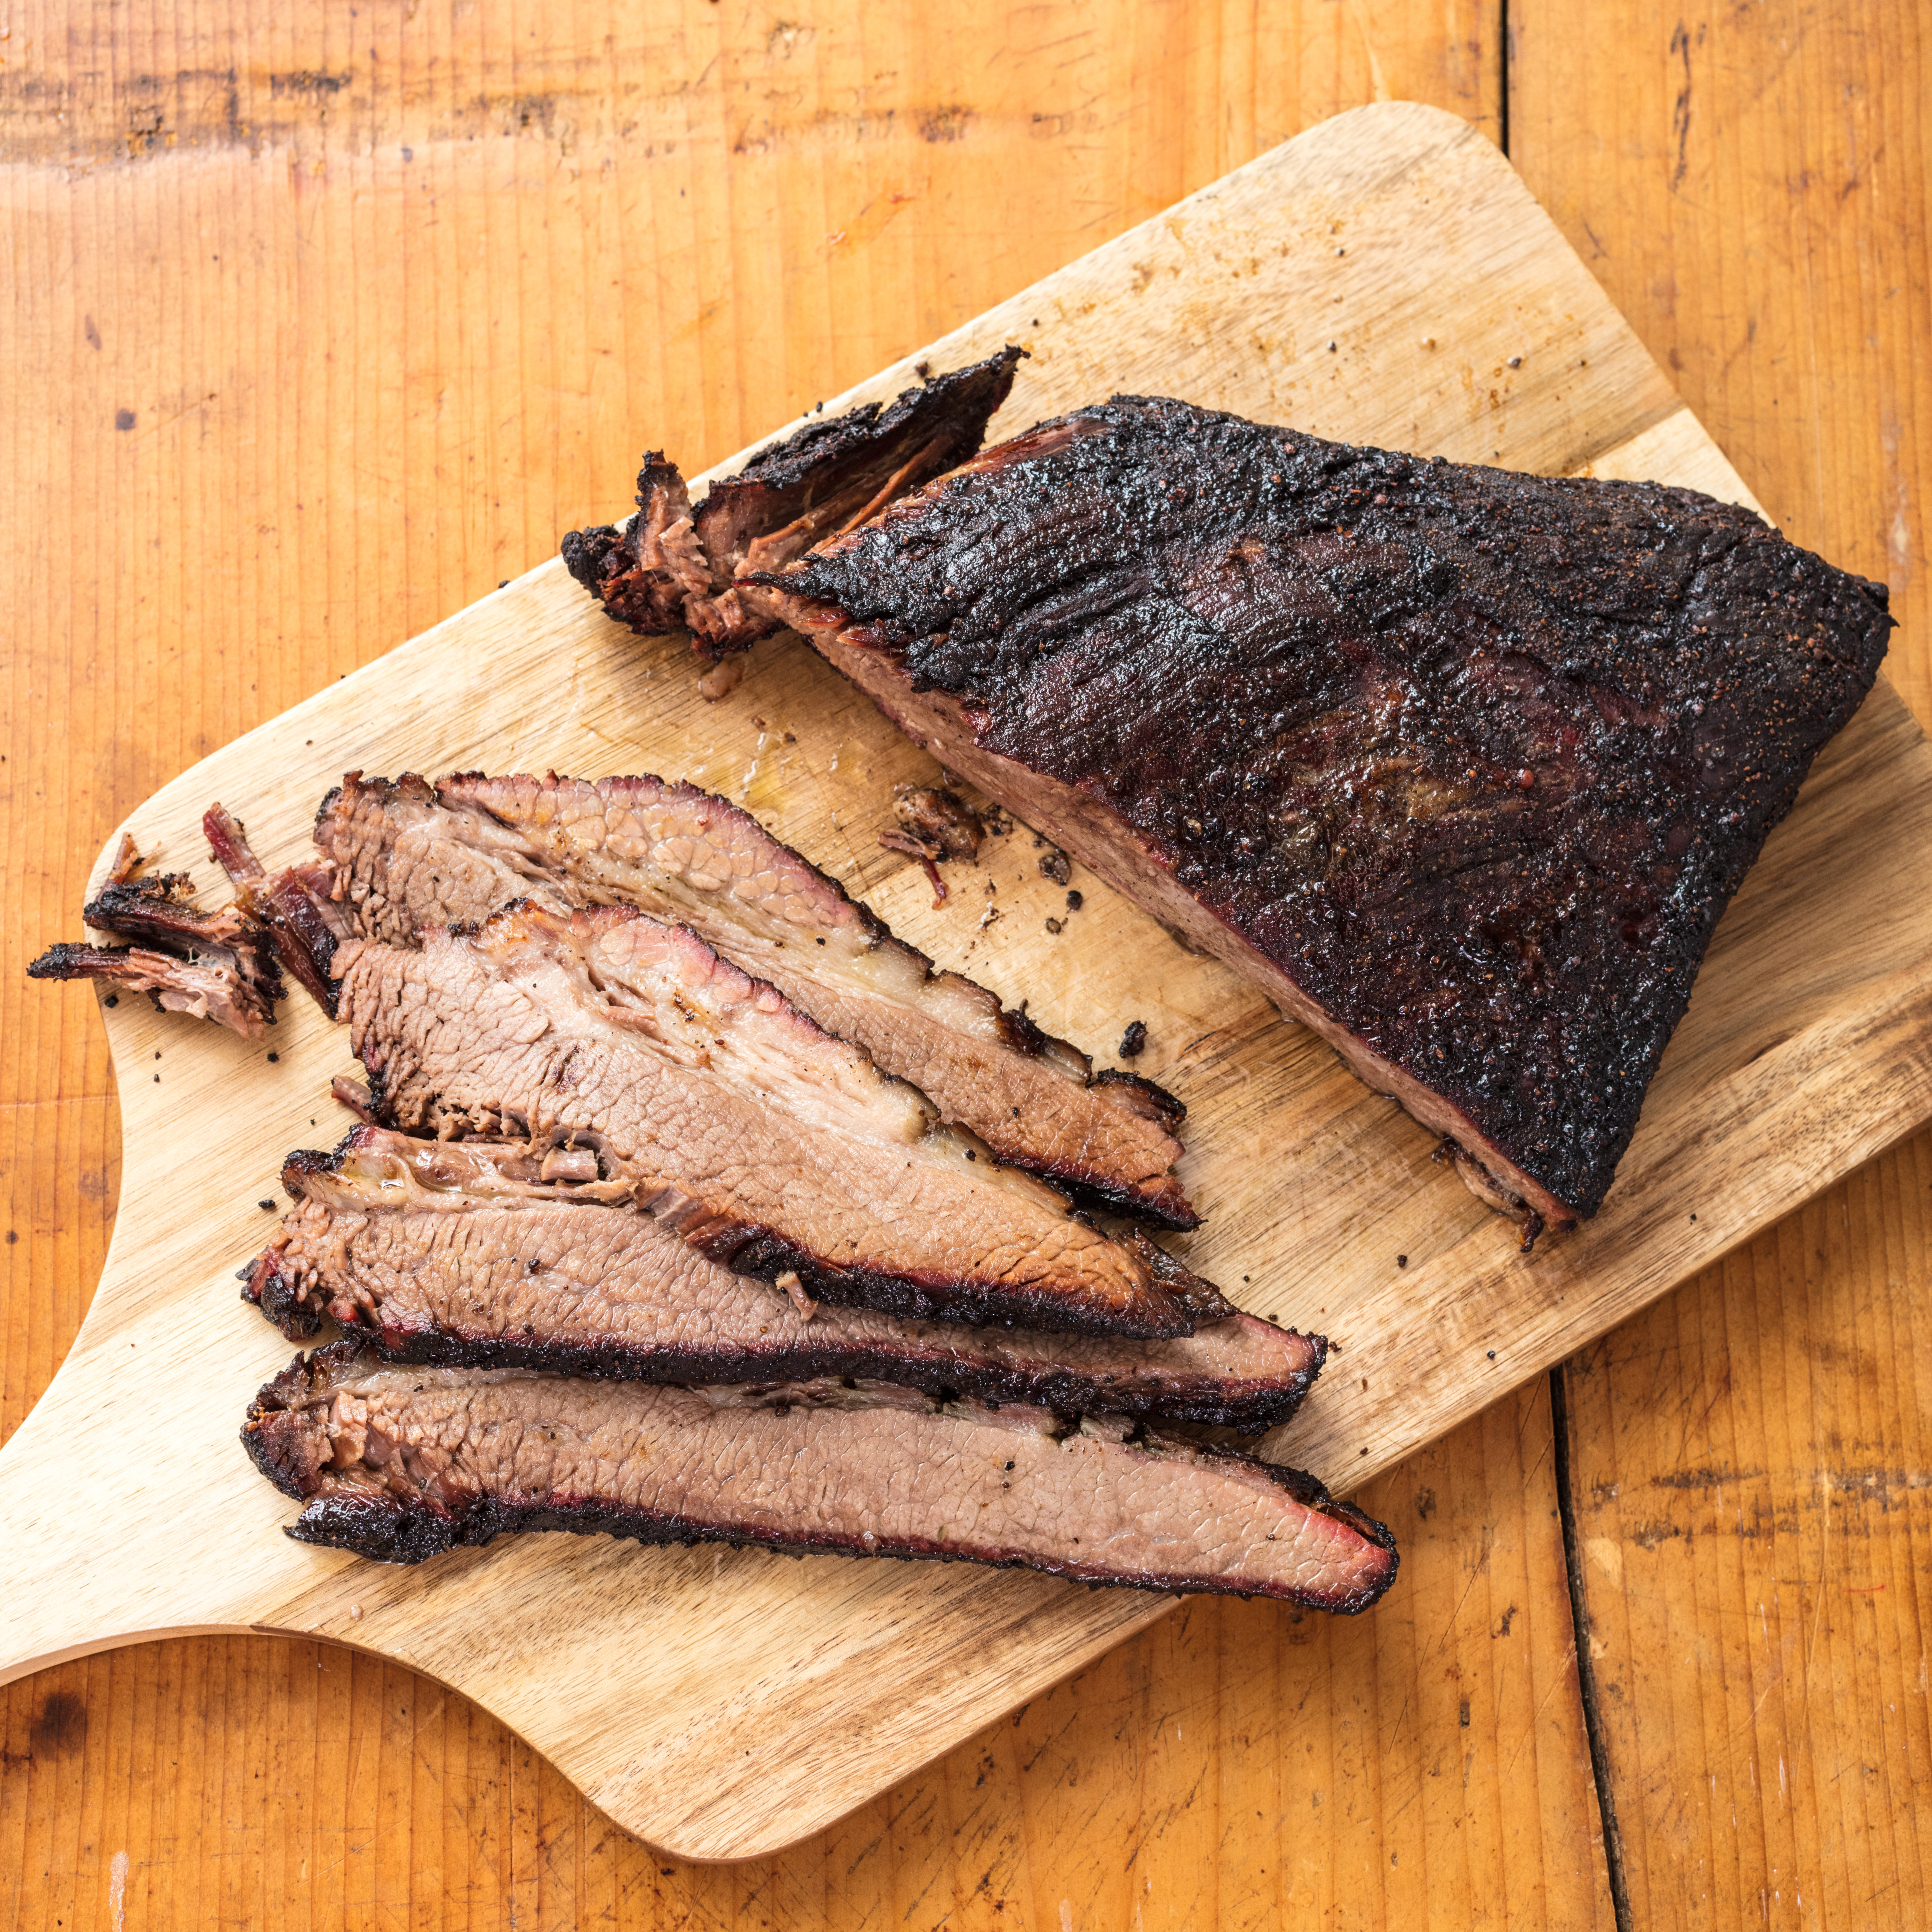 Tips For Cooking Low And Slow On Your Gas Grill: Barbecued Beef Brisket On The Gas Grill